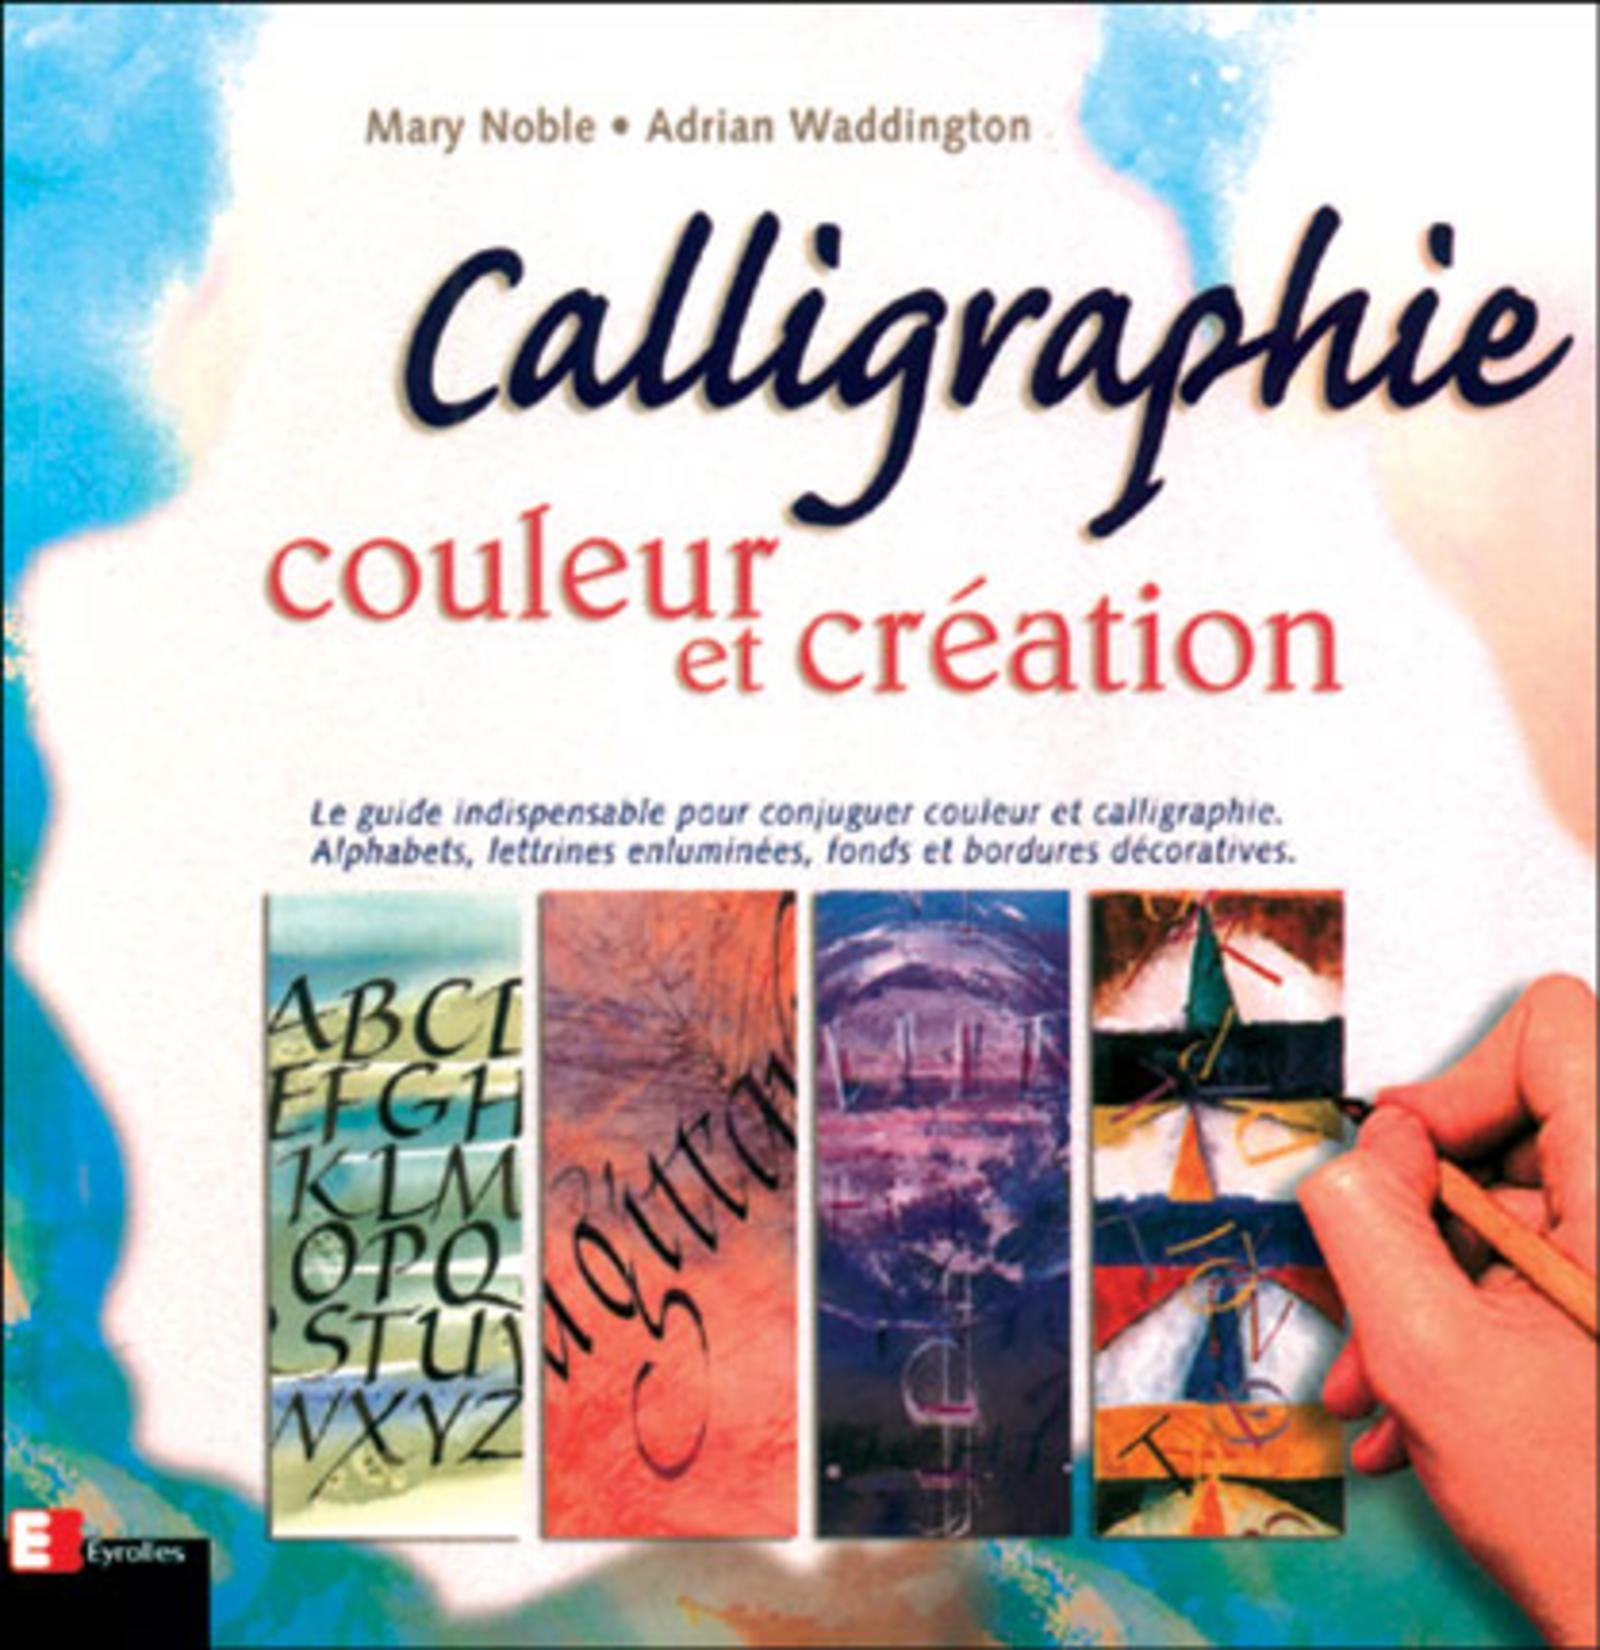 CALLIGRAPHIE, COULEUR & CREATION - LE GUIDE INDISPENSABLE POUR CONJUGUER COULEUR ET CALLIGRAPHIE, AL